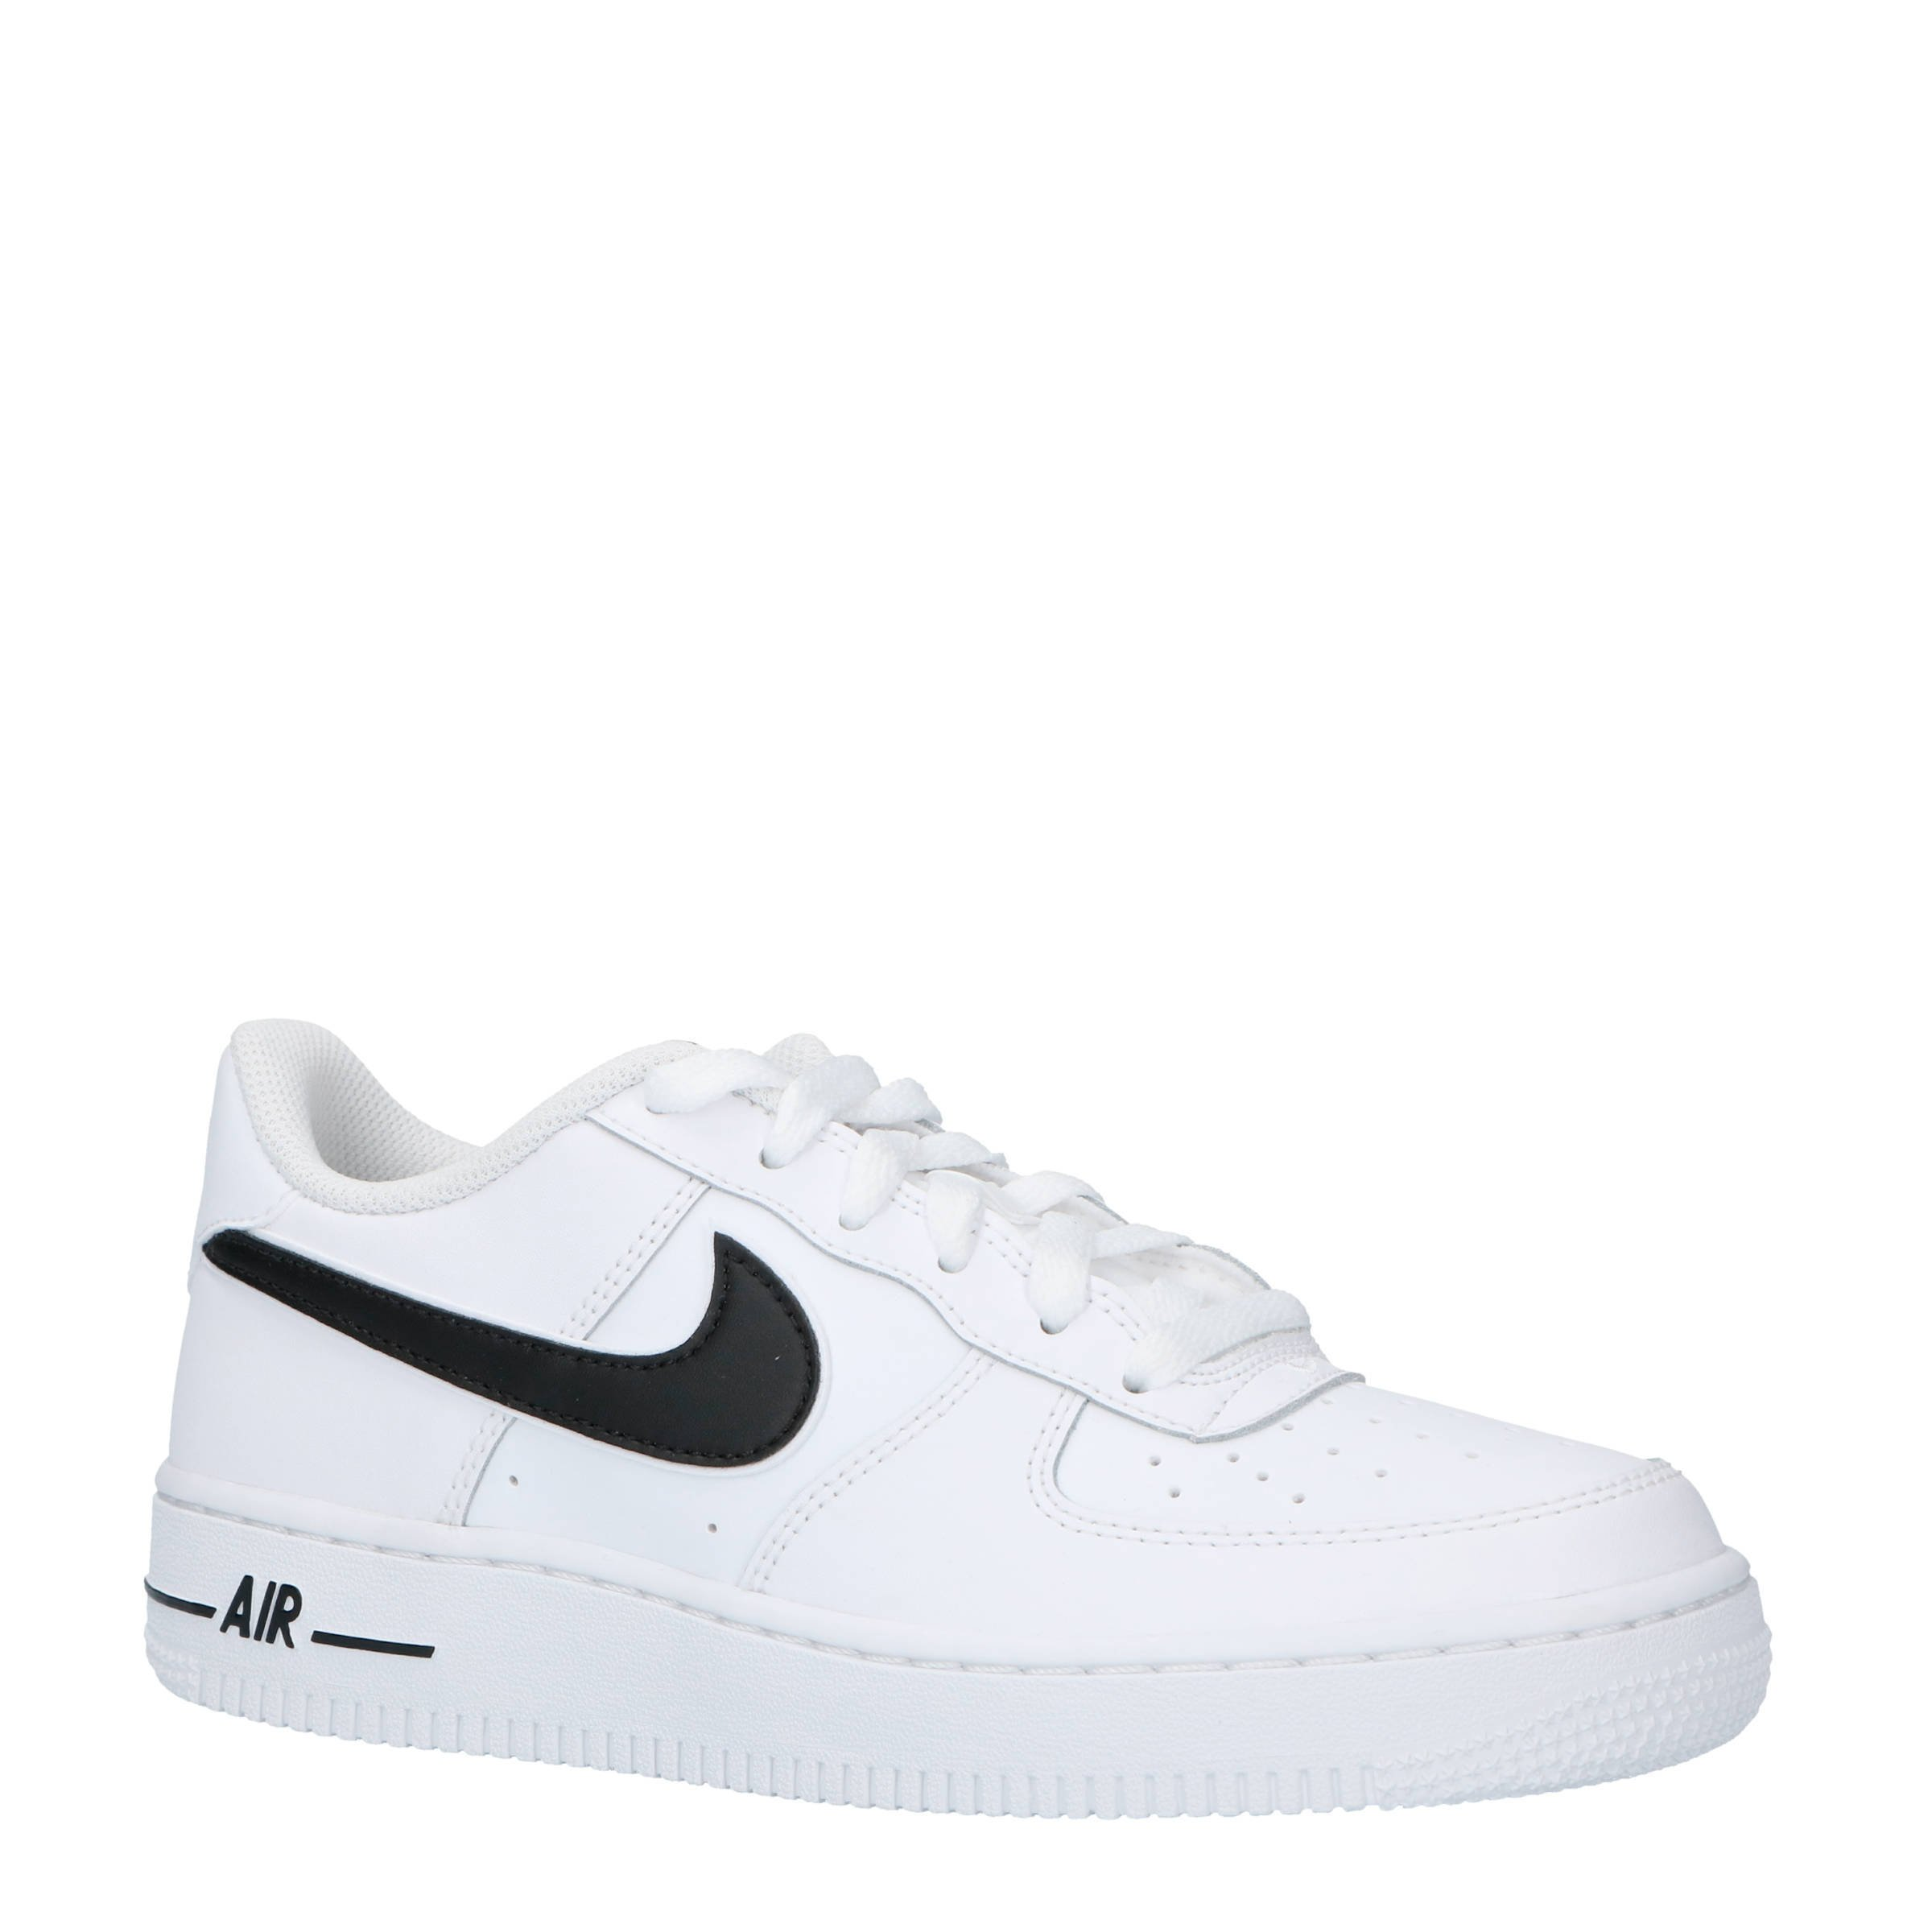 nike air force 1 leer zwart wit aliexpress 4ee1c d3386